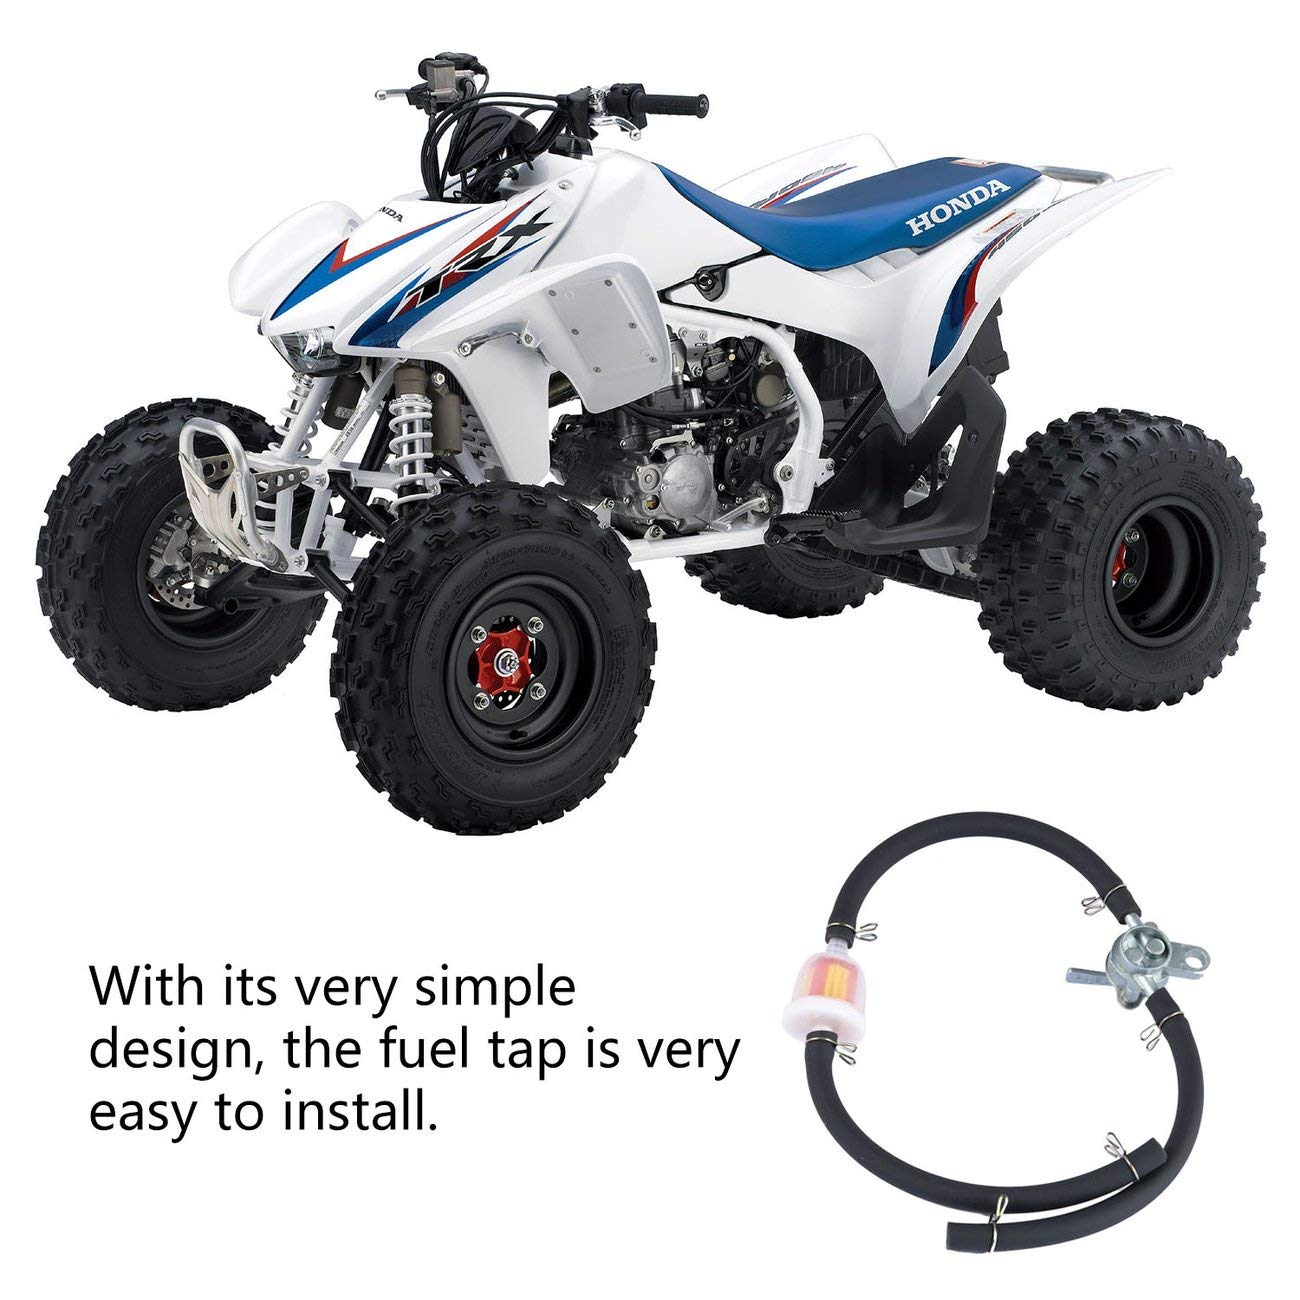 Hose Pit Soil Bicycle Atv Motorcycle Off-Road Vehicle Filter Elviray Inline Fuel Tank Faucet